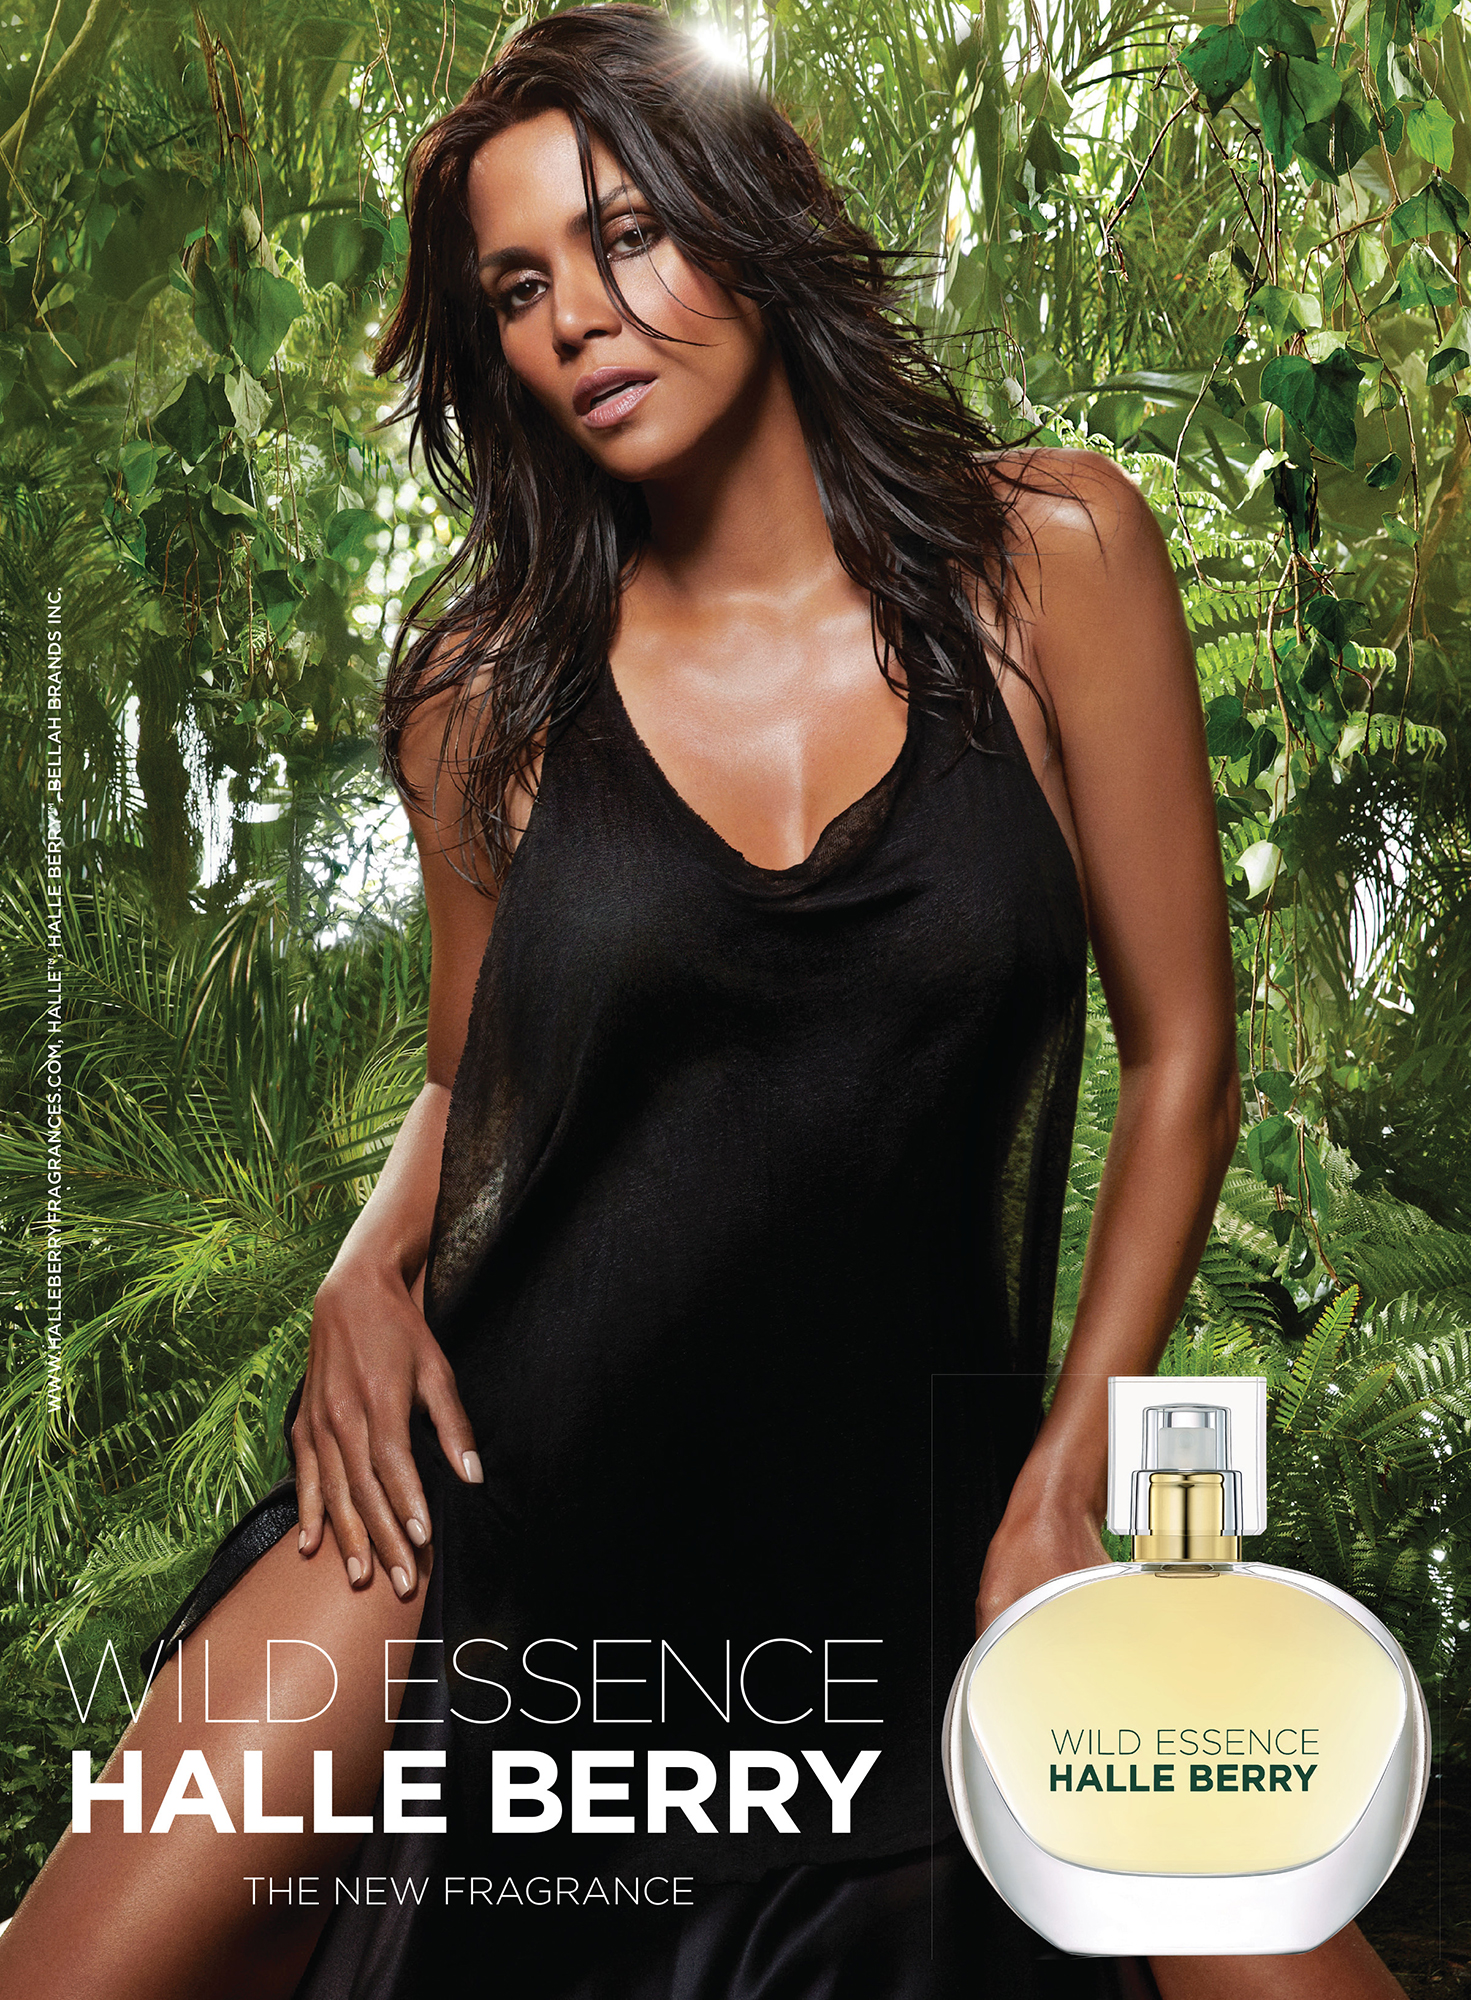 http://www.multivu.com/players/English/7296257-coty-new-women-fragrance-halle-berry-wild-essence/gallery/image/90f7b830-cd1c-4a37-b983-20317a70cc8a.HR.jpg